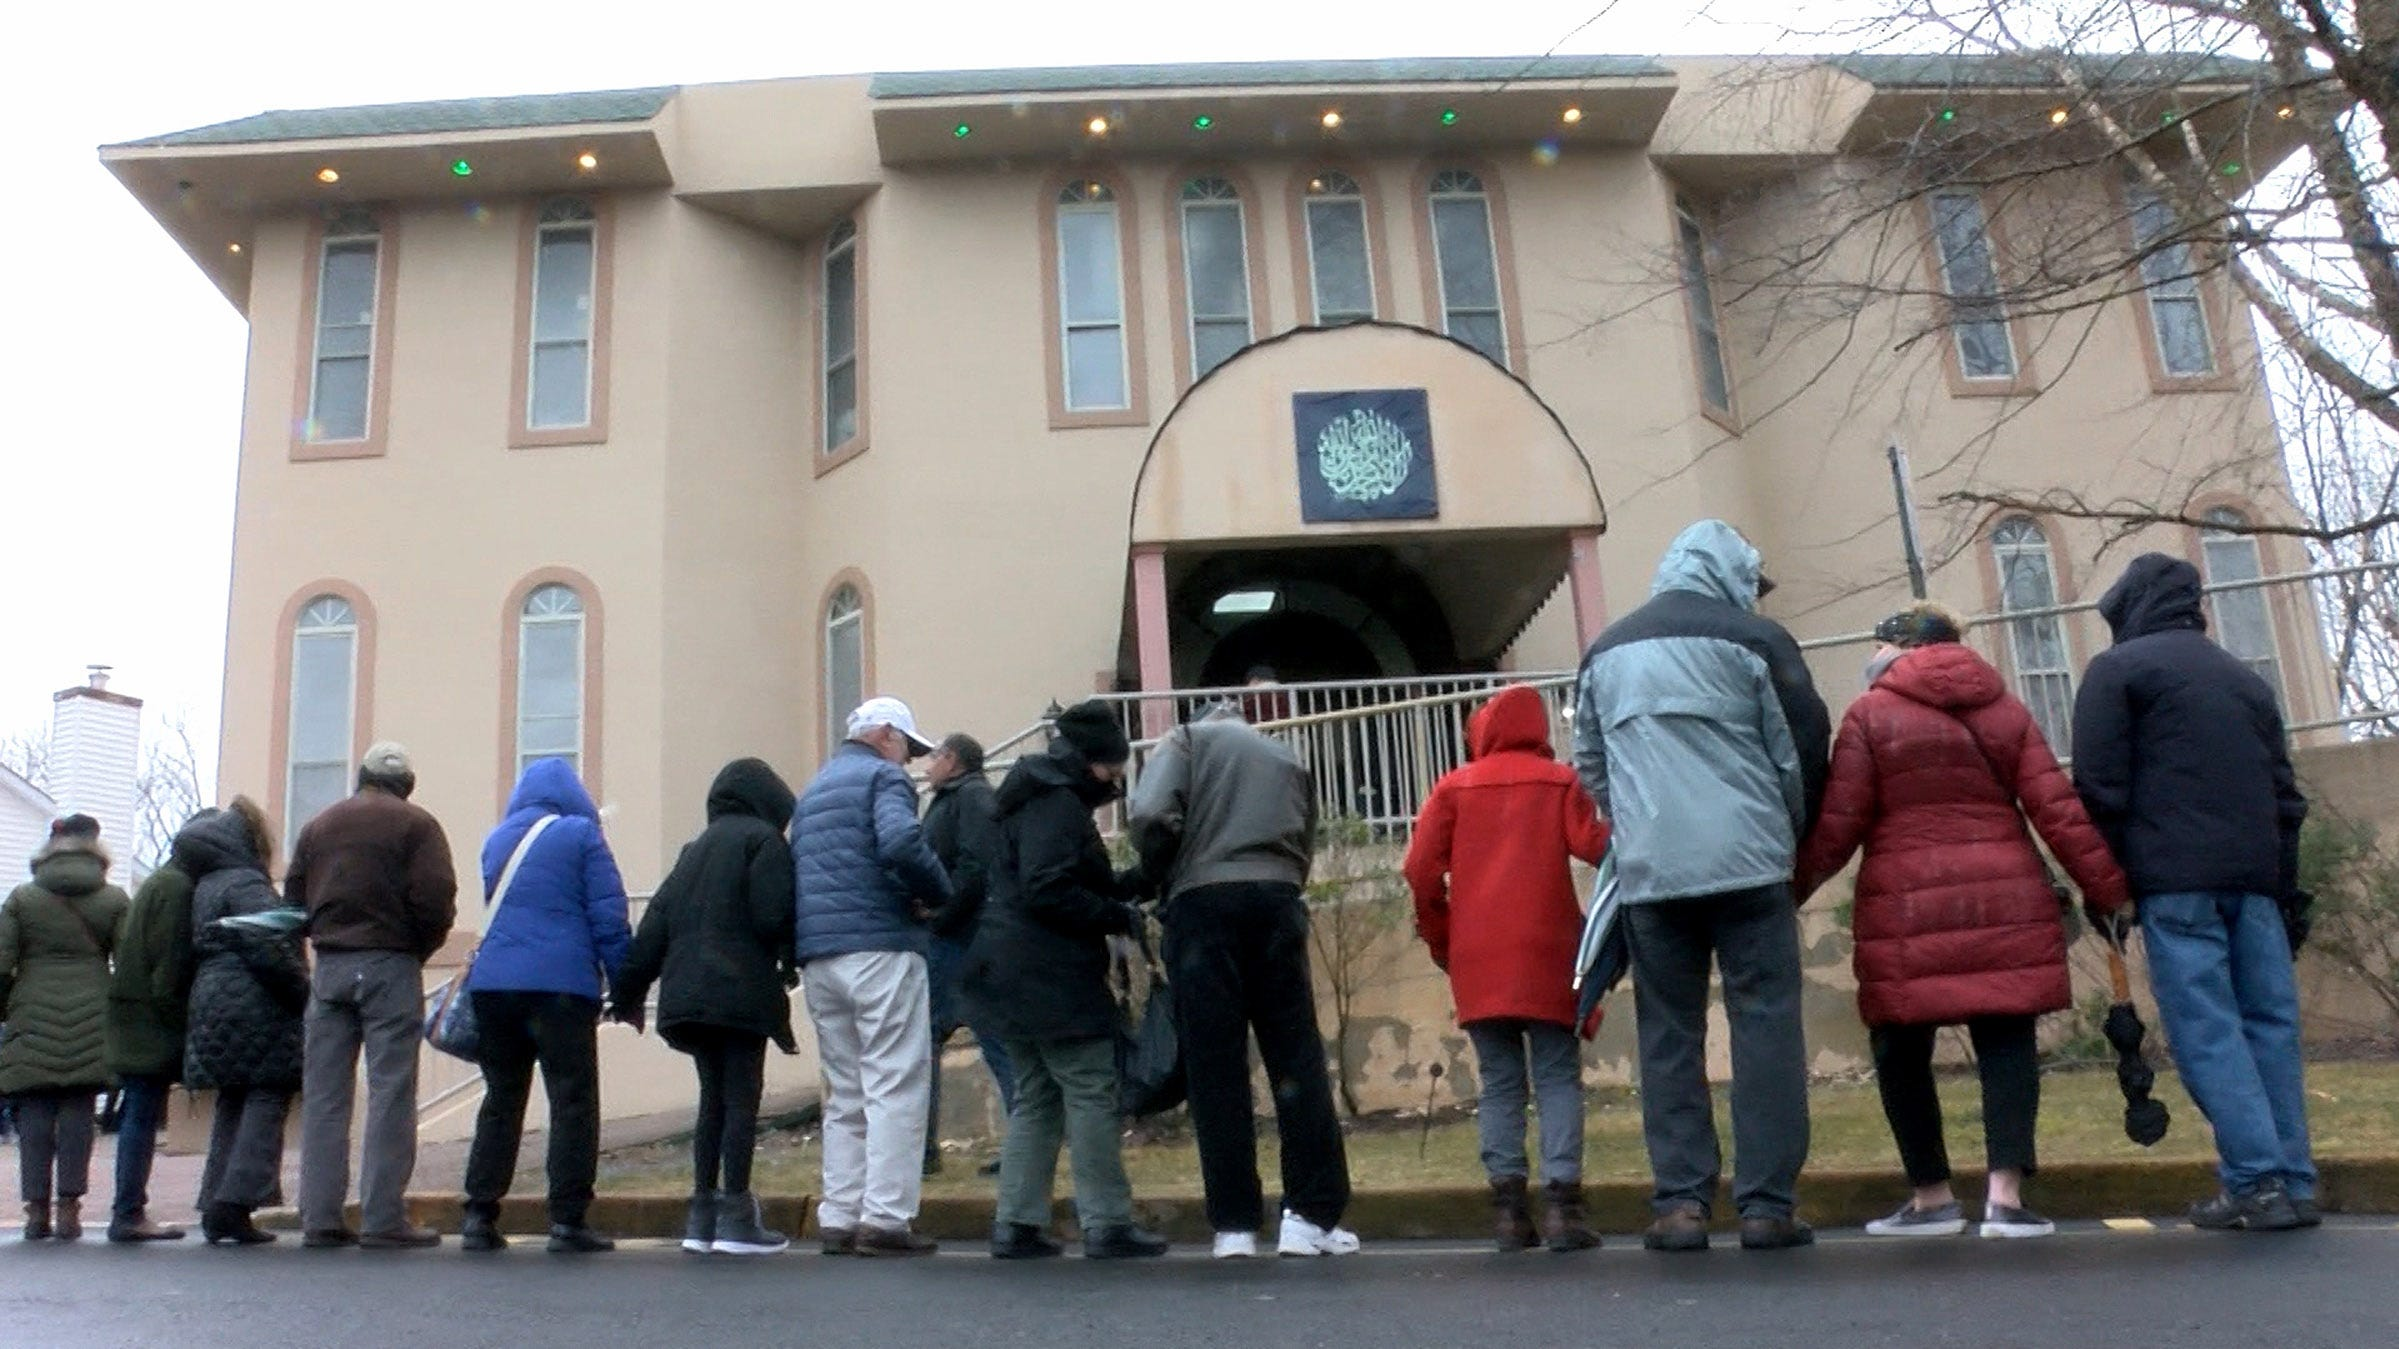 Masjid New Zealand Pinterest: New Zealand Shootings: Middletown Mosque Surrounded By